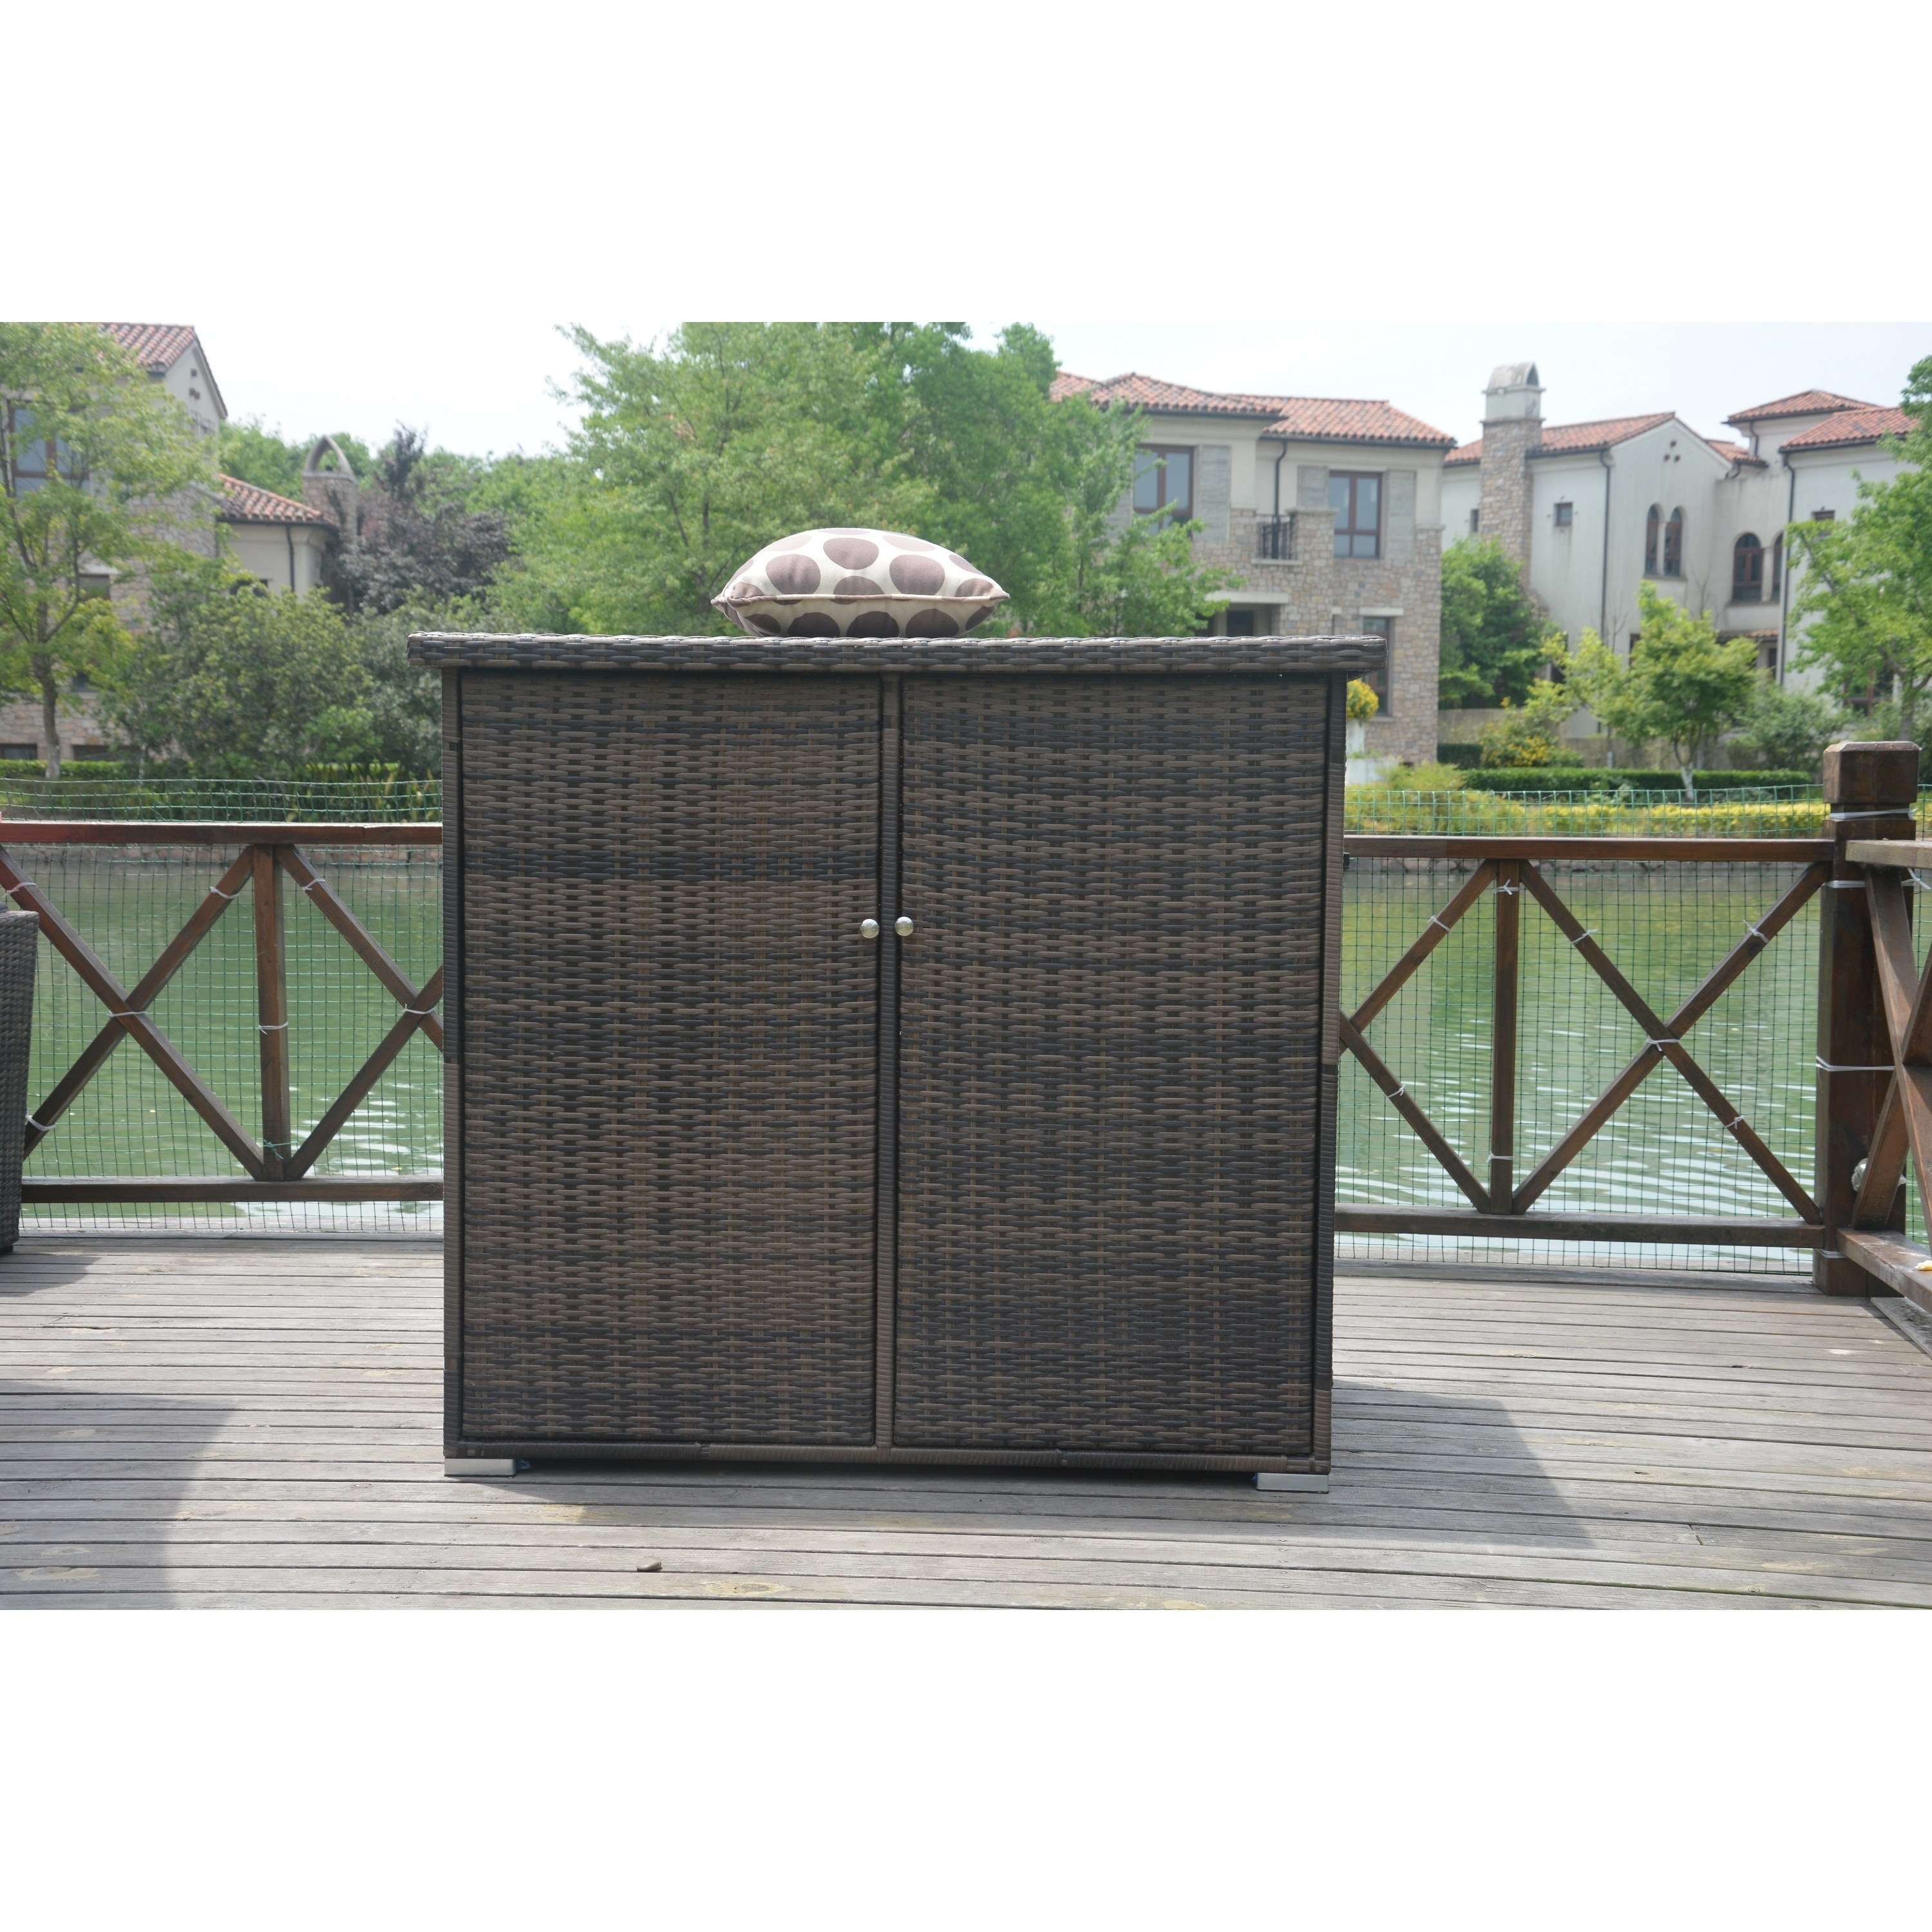 Direct Wicker Santa Rosa Wicker Garden Storage Shed with Lid by